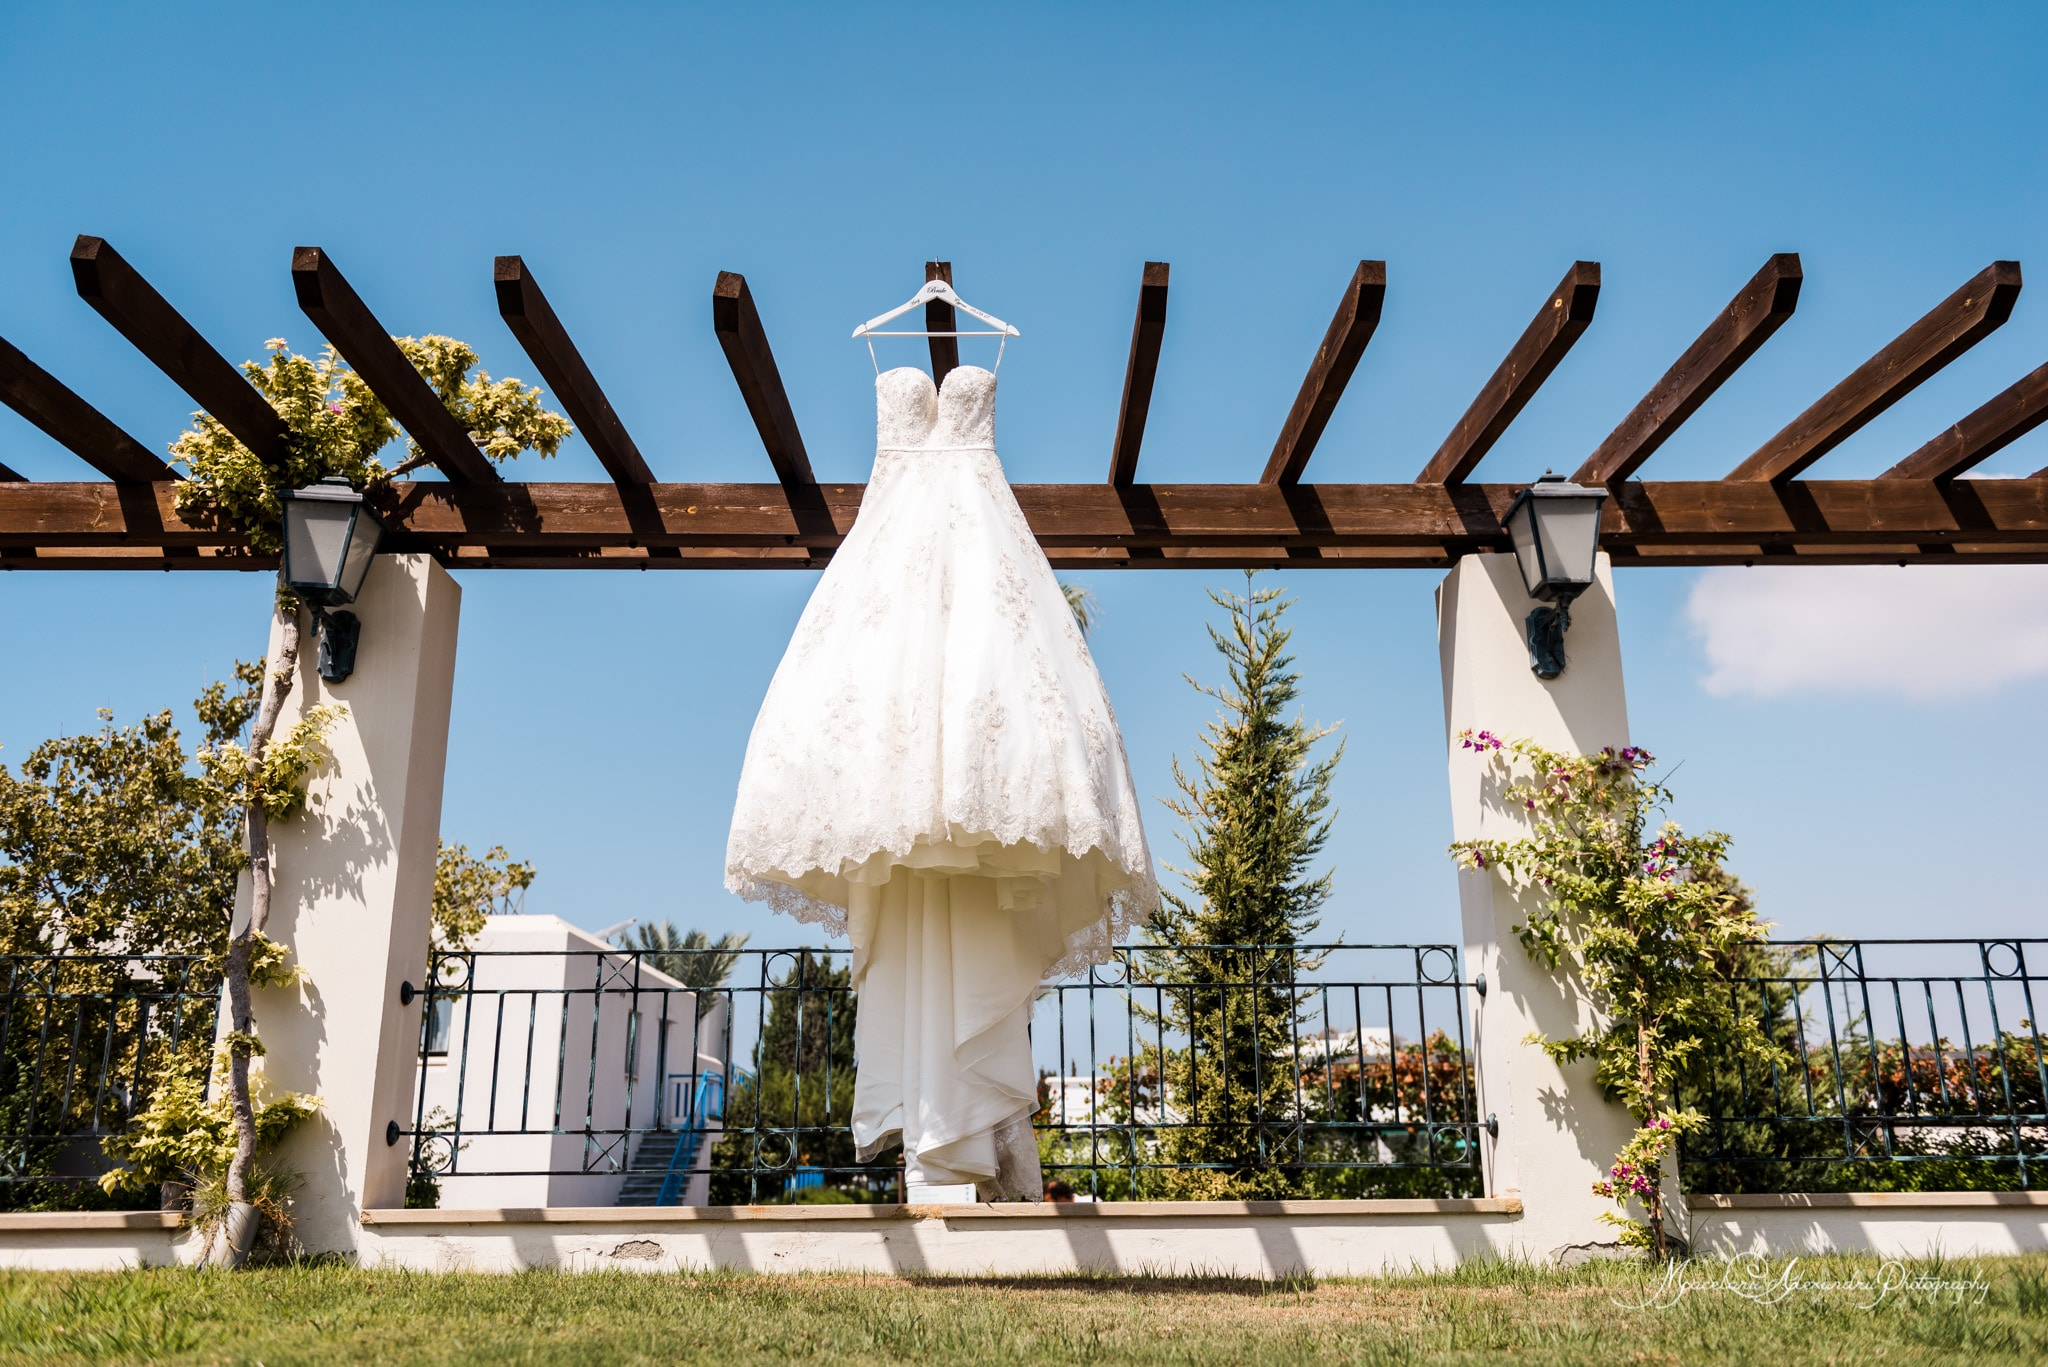 Wedding photography in Paphos - Aliathon Village